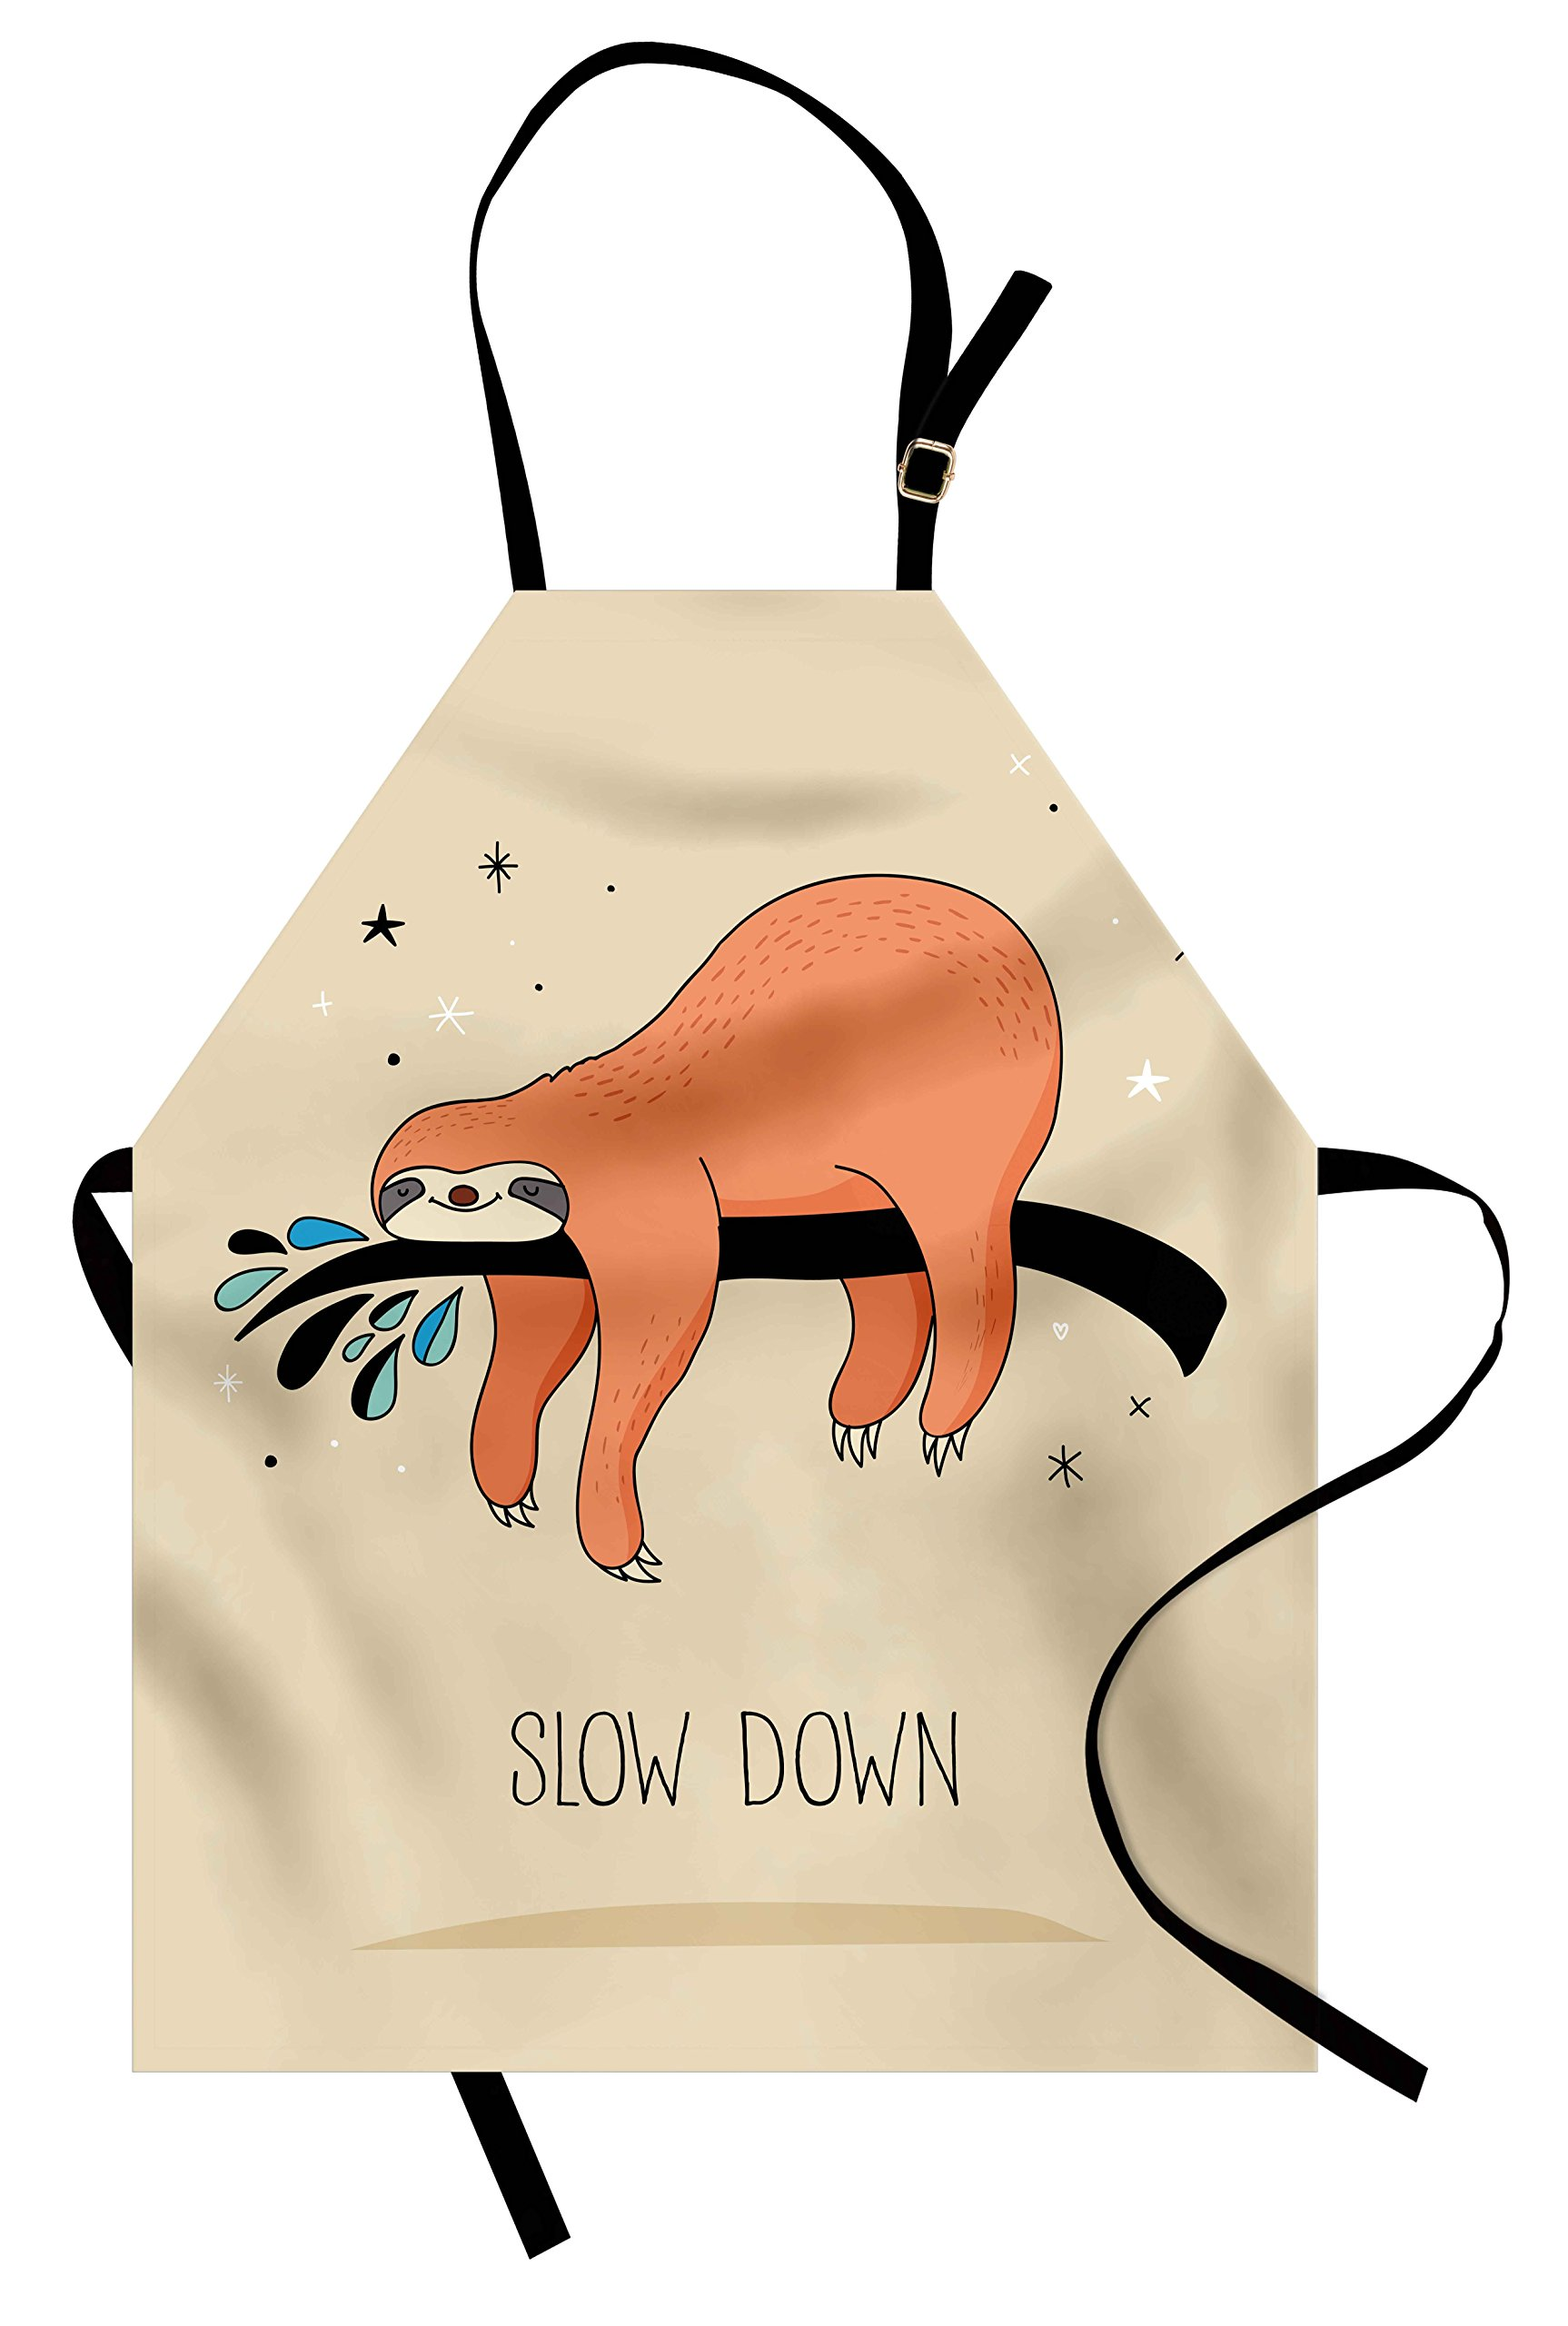 Ambesonne Animal Apron, Sleeping Big Bear and Sloth Hanging on a Bench Cozy Lazy Wild Creature Image Print, Unisex Kitchen Bib Apron with Adjustable Neck for Cooking Baking Gardening, Multicolor